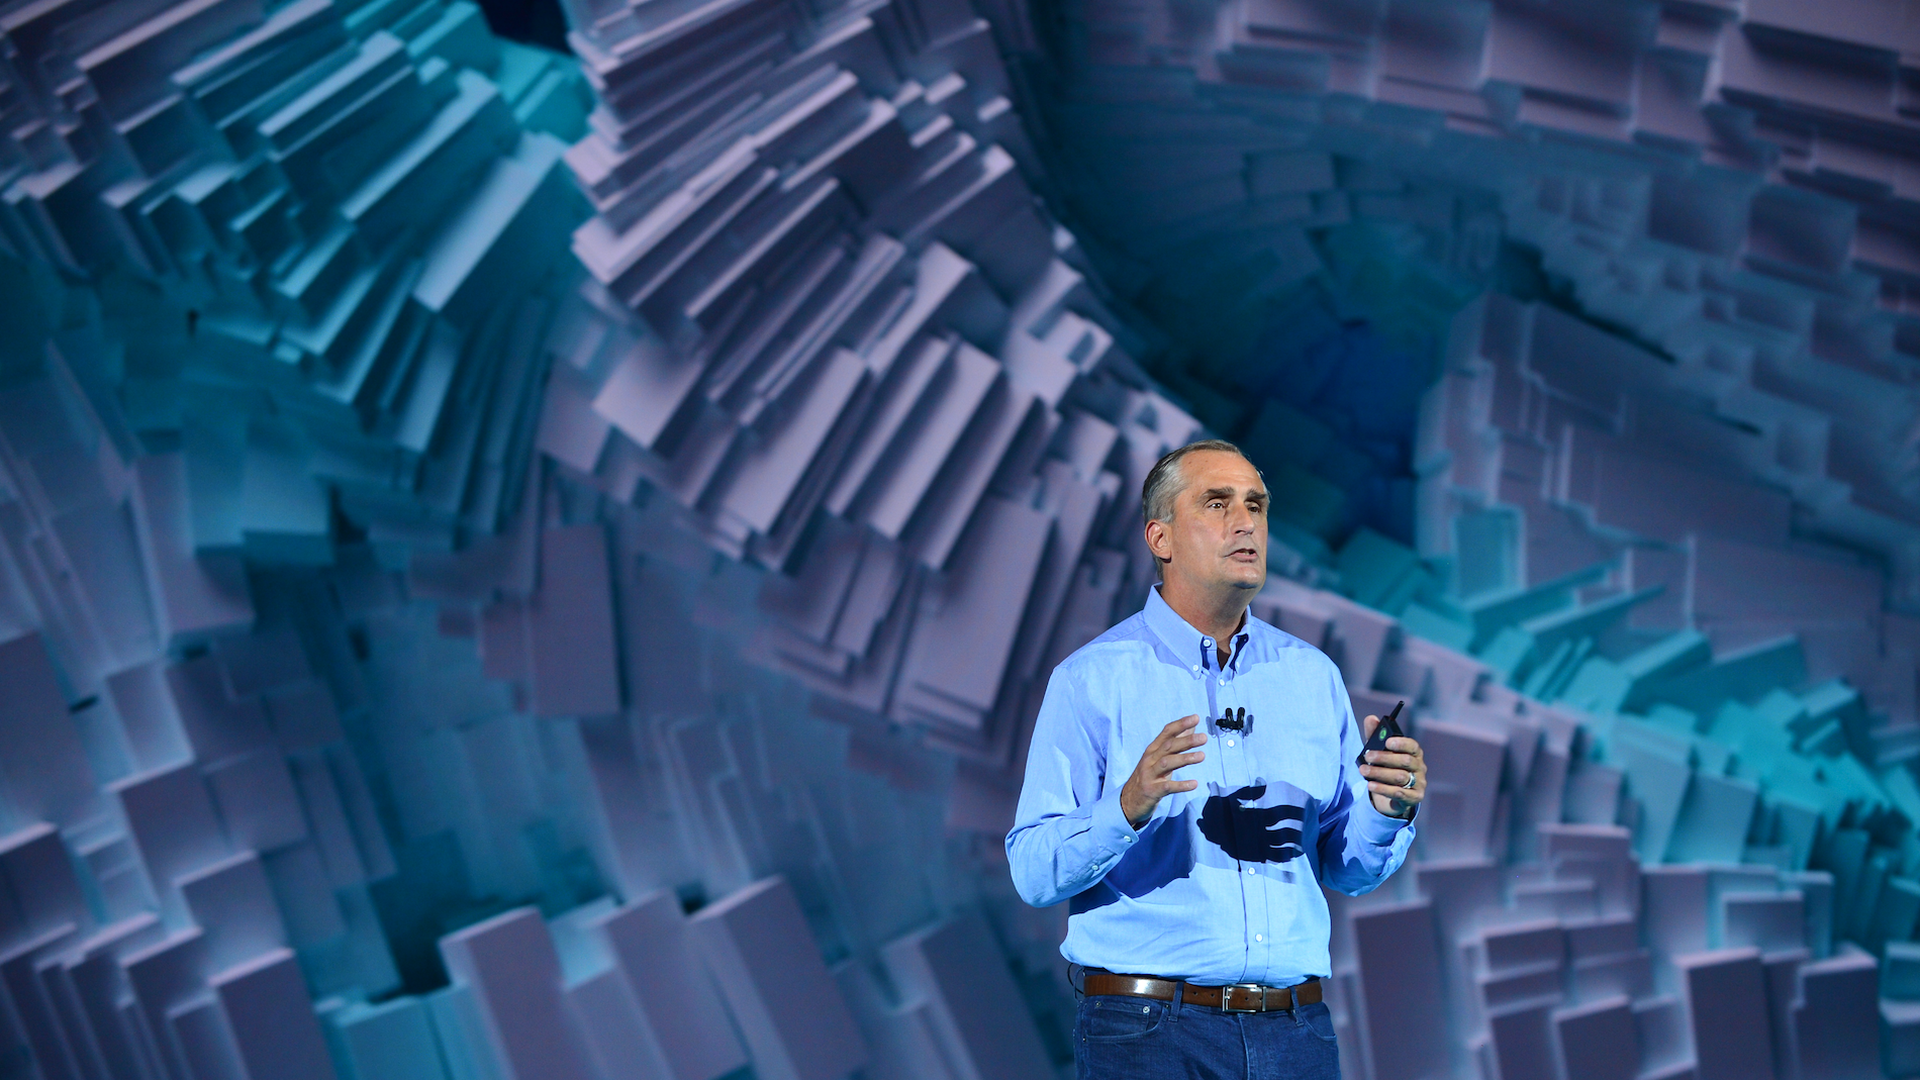 Intel CEO Brian Krzanich, speaking at CES 2018